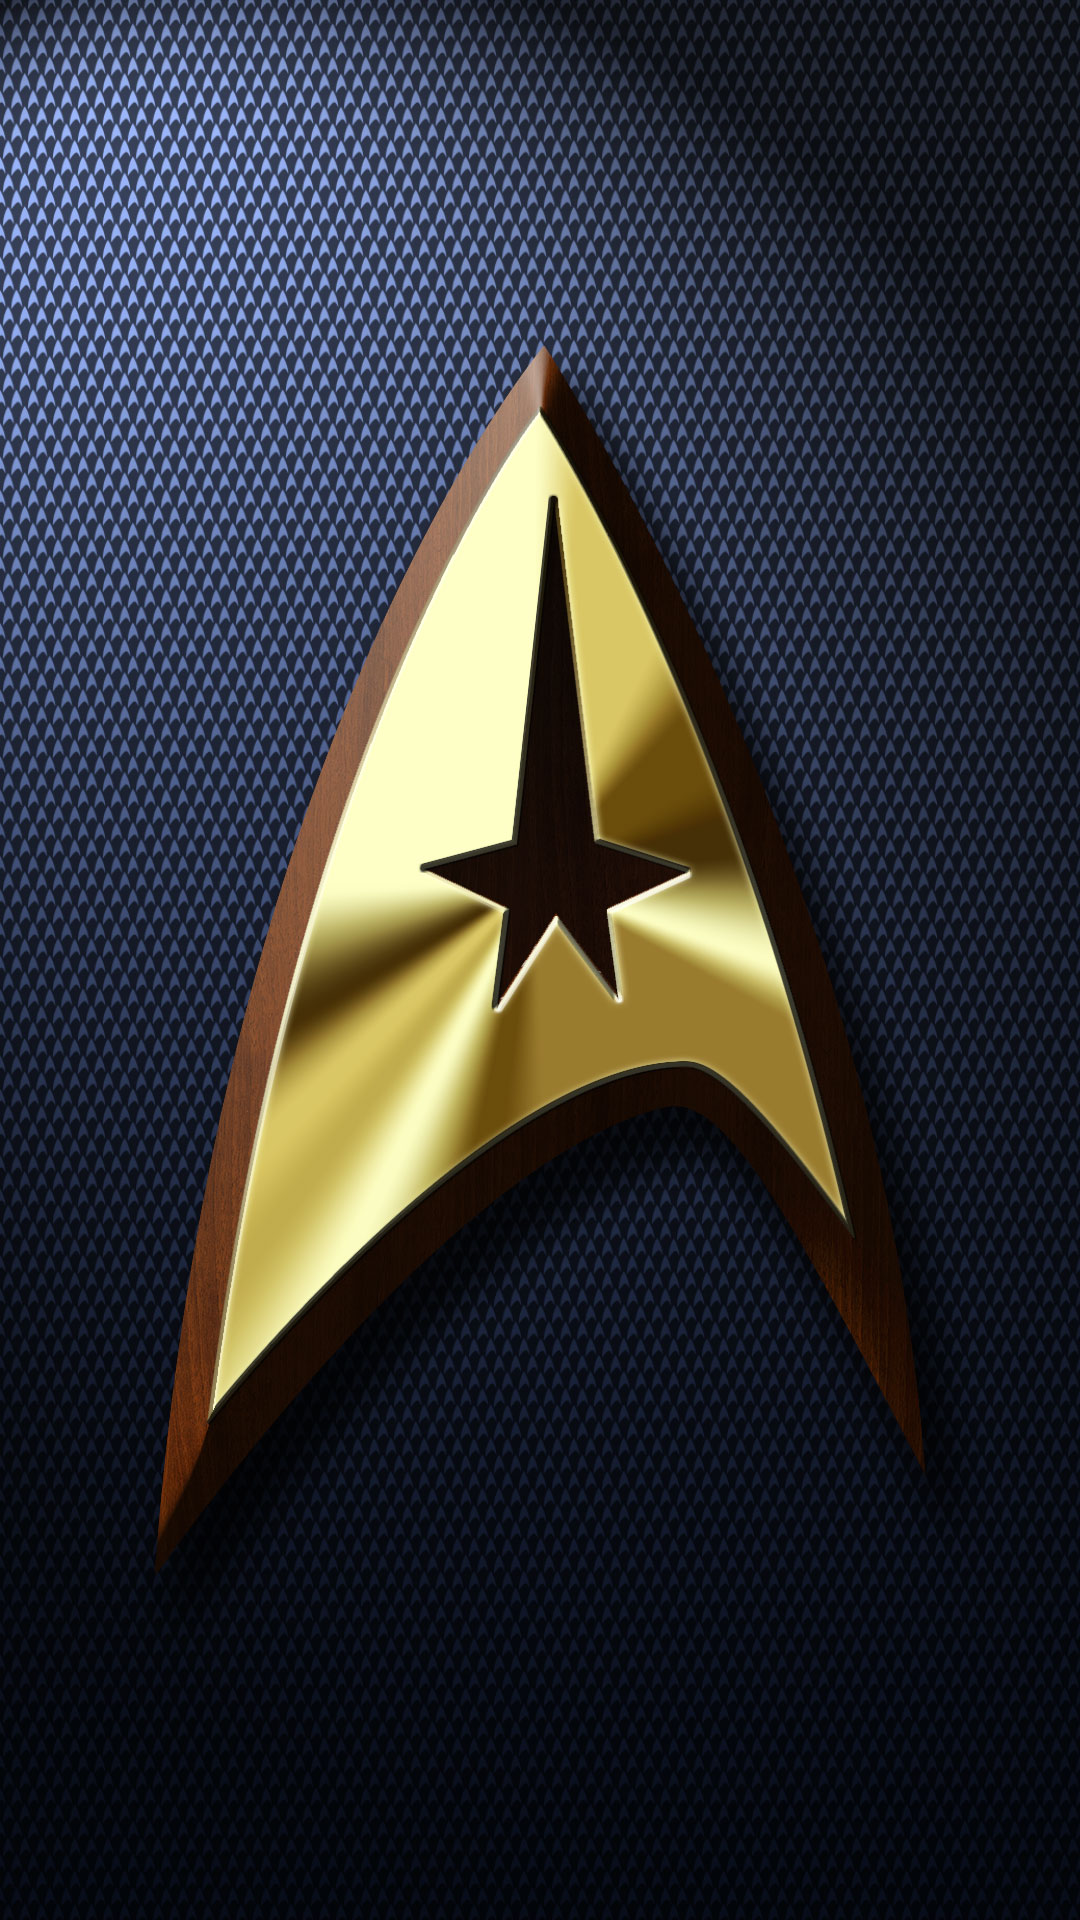 Star Trek Mobile Wallpapers